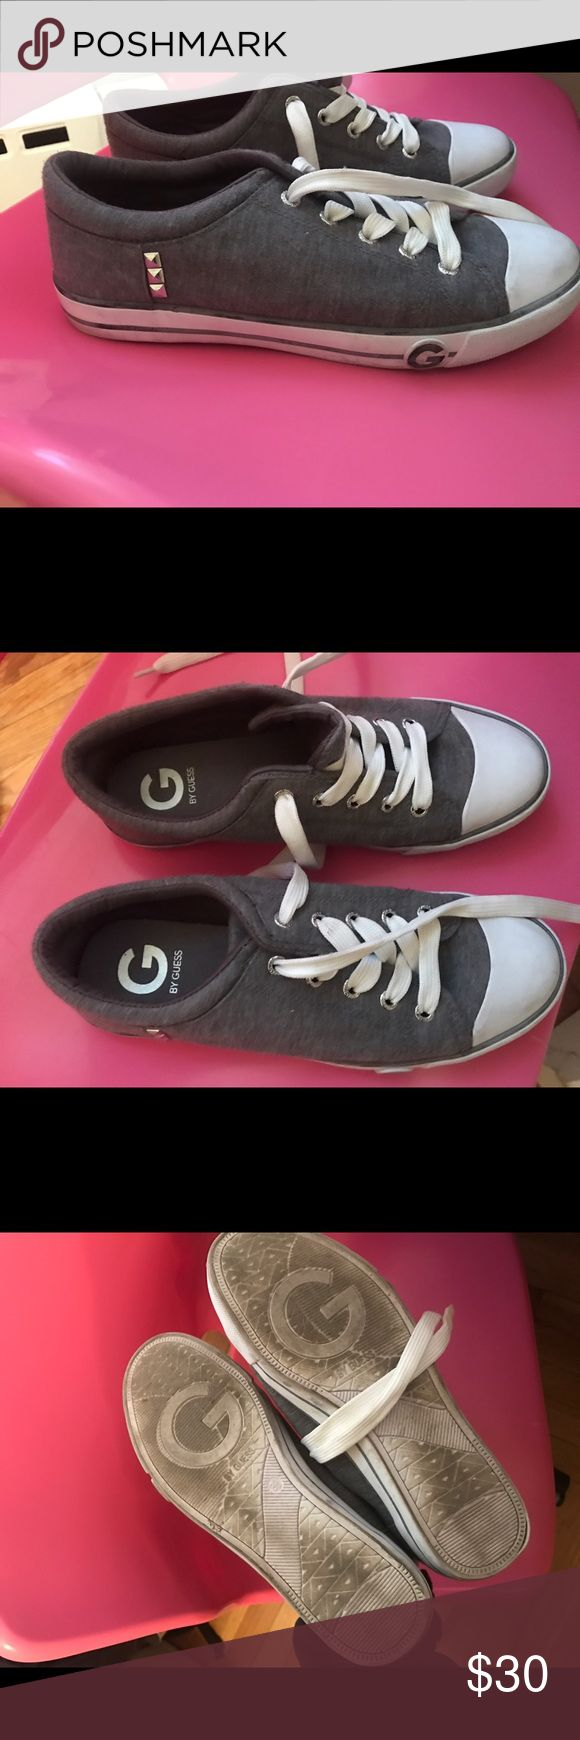 Grey guess shoes Converse looking grey Guess shoes perfect for the spring. Only worn about 3 times G by Guess Shoes Sneakers